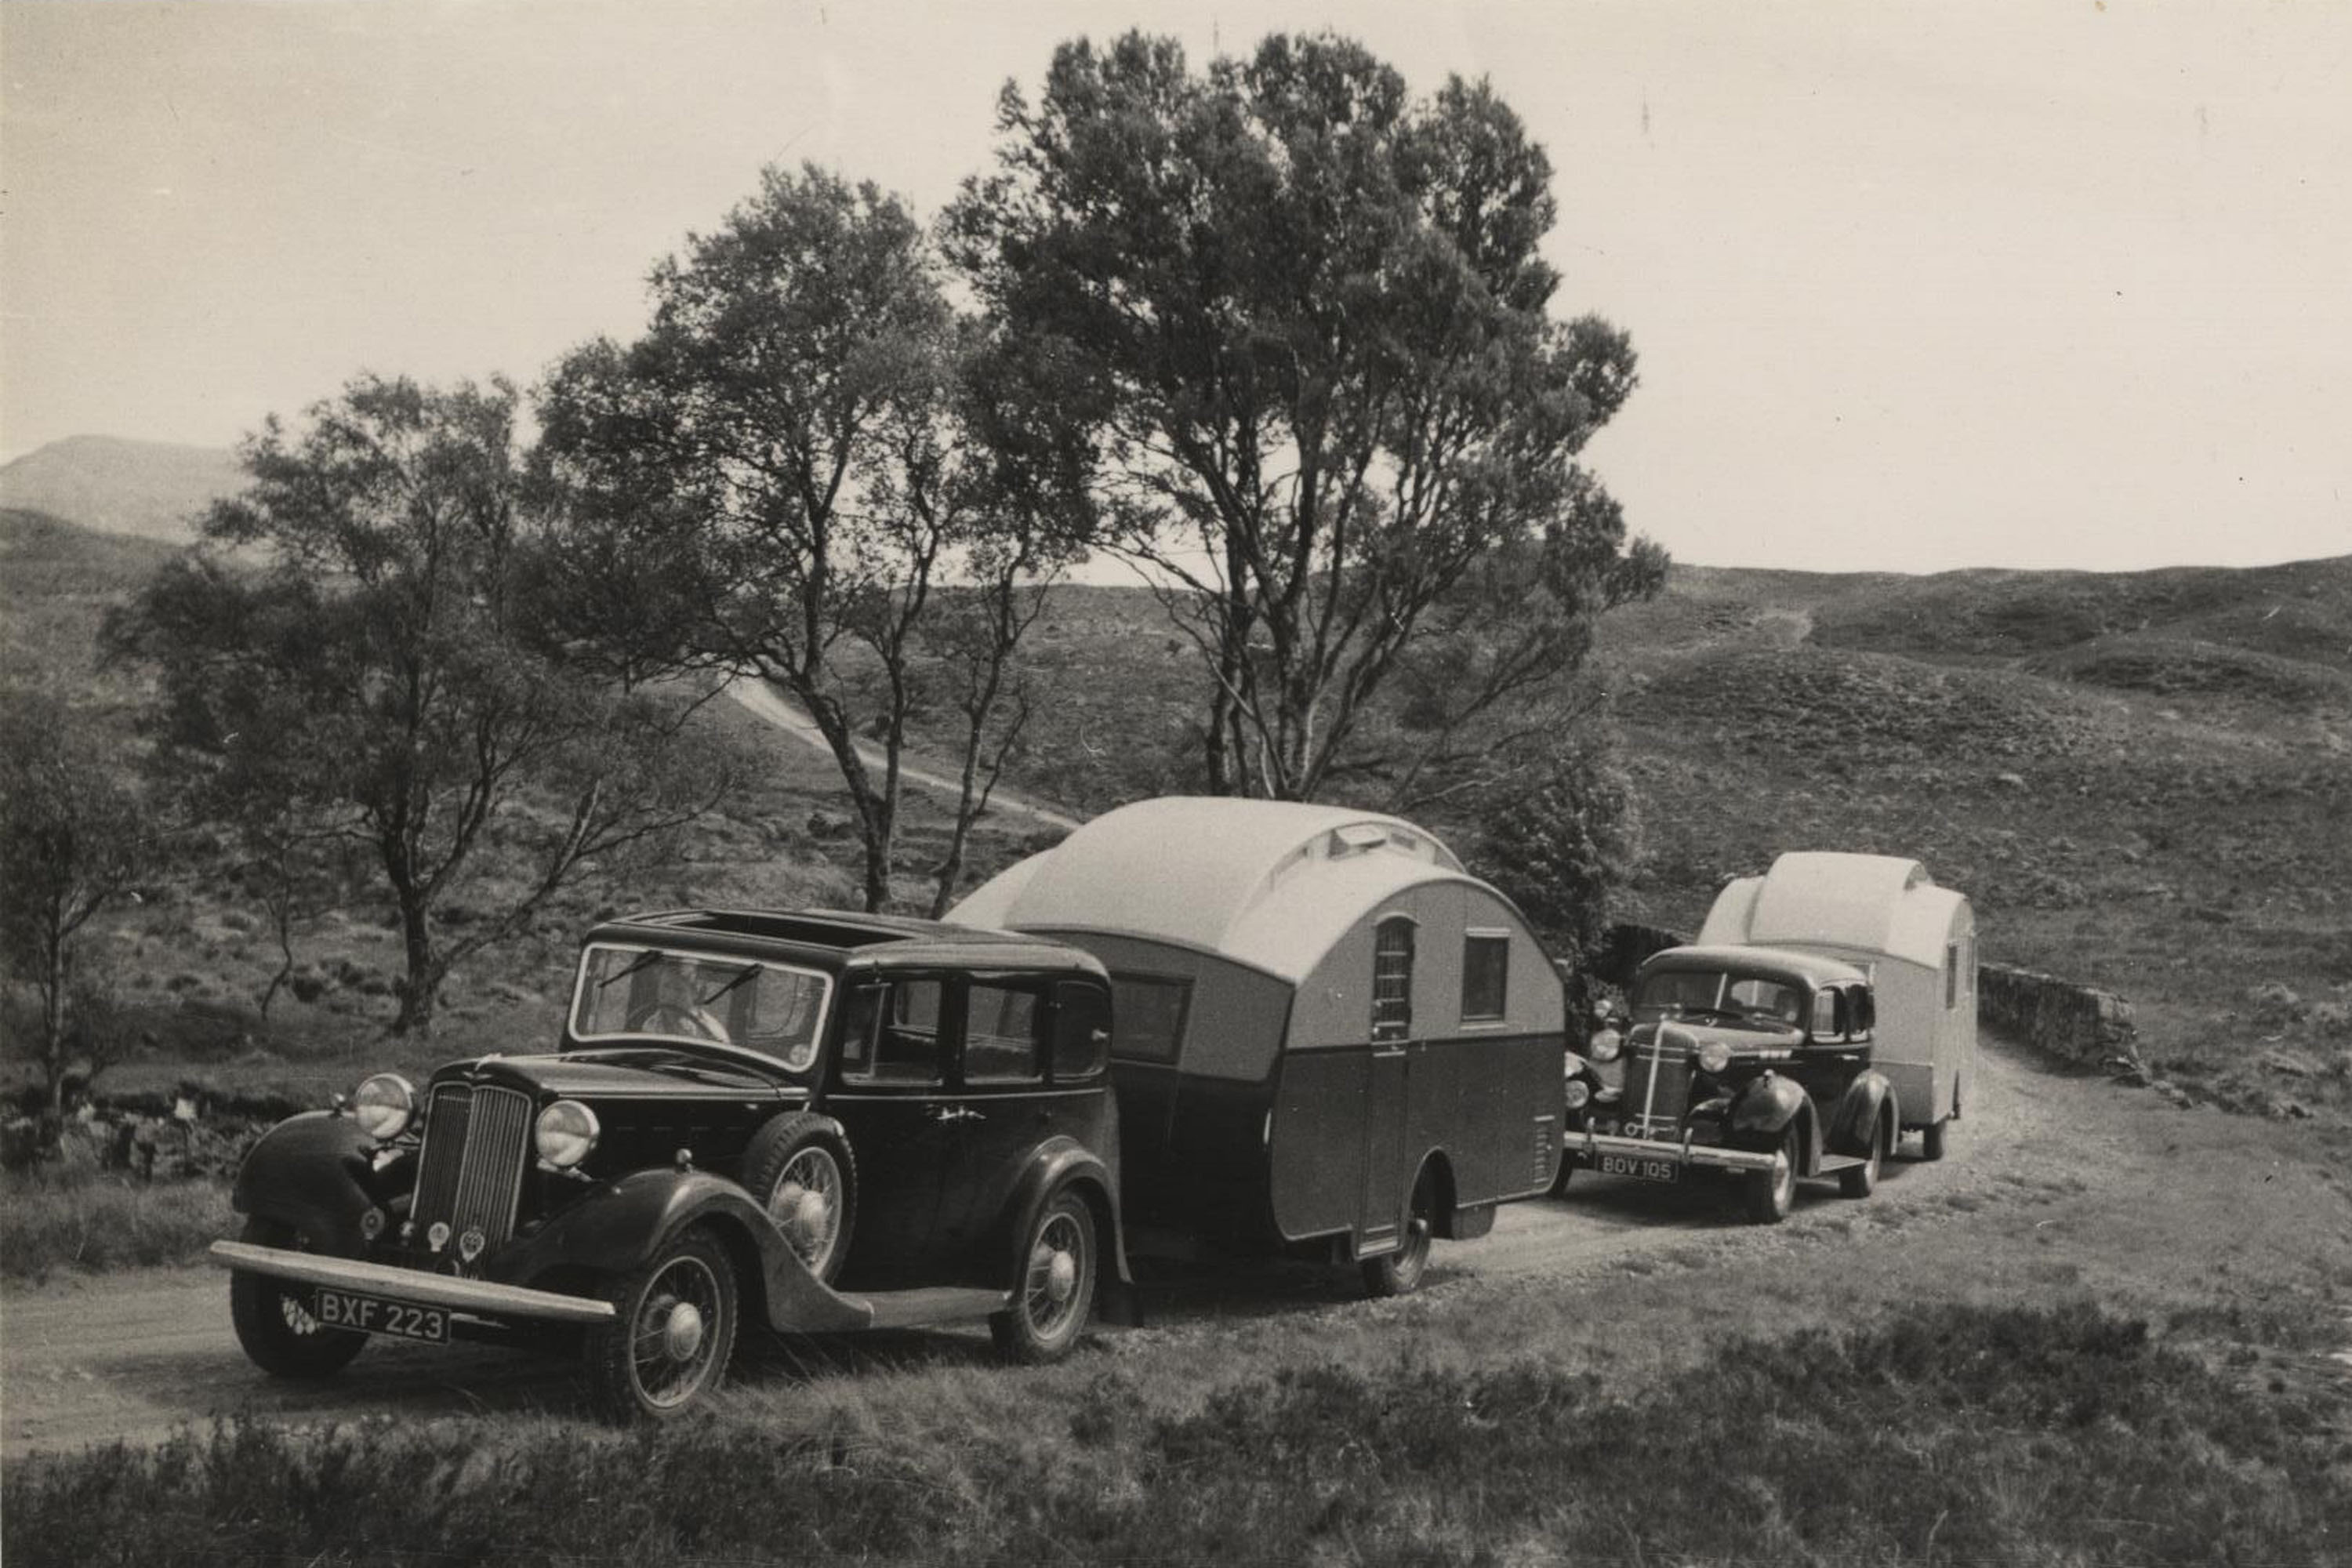 Two cars and caravans touring through Scotland